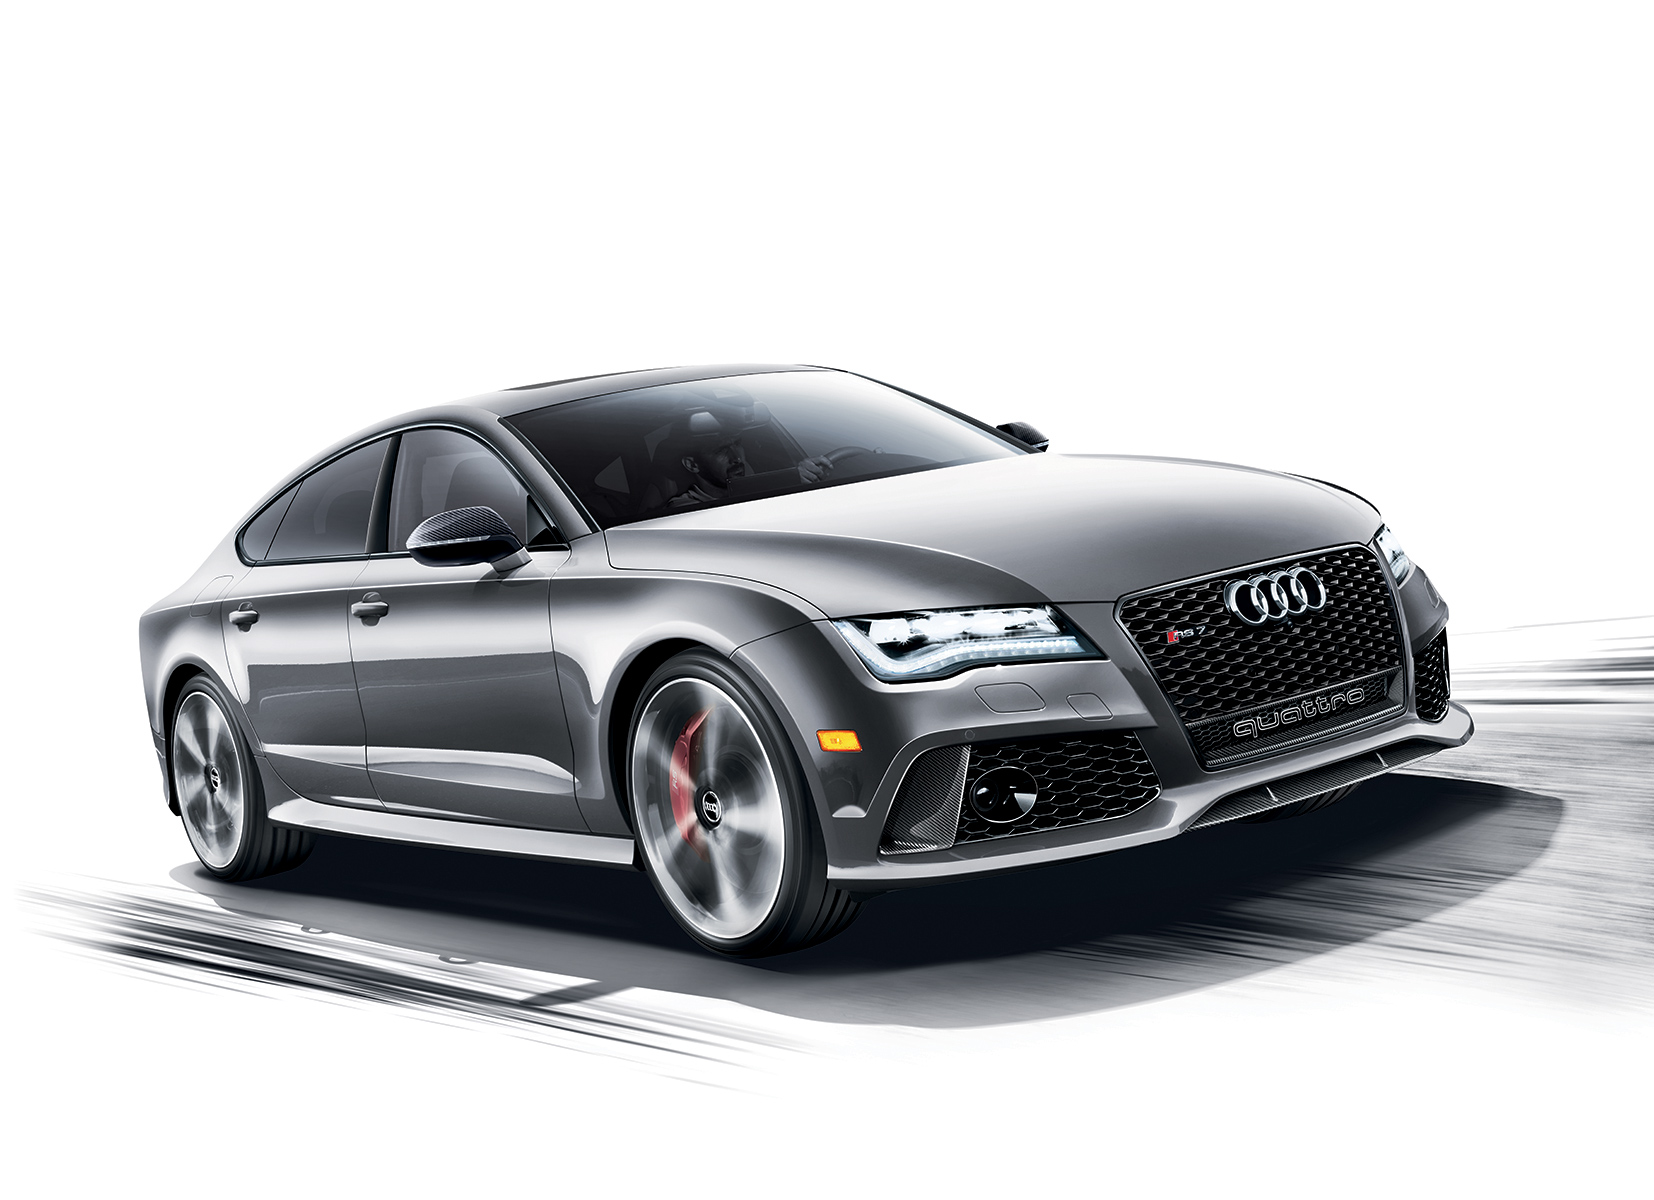 2014 Audi RS7 Dynamic Edition News and Information